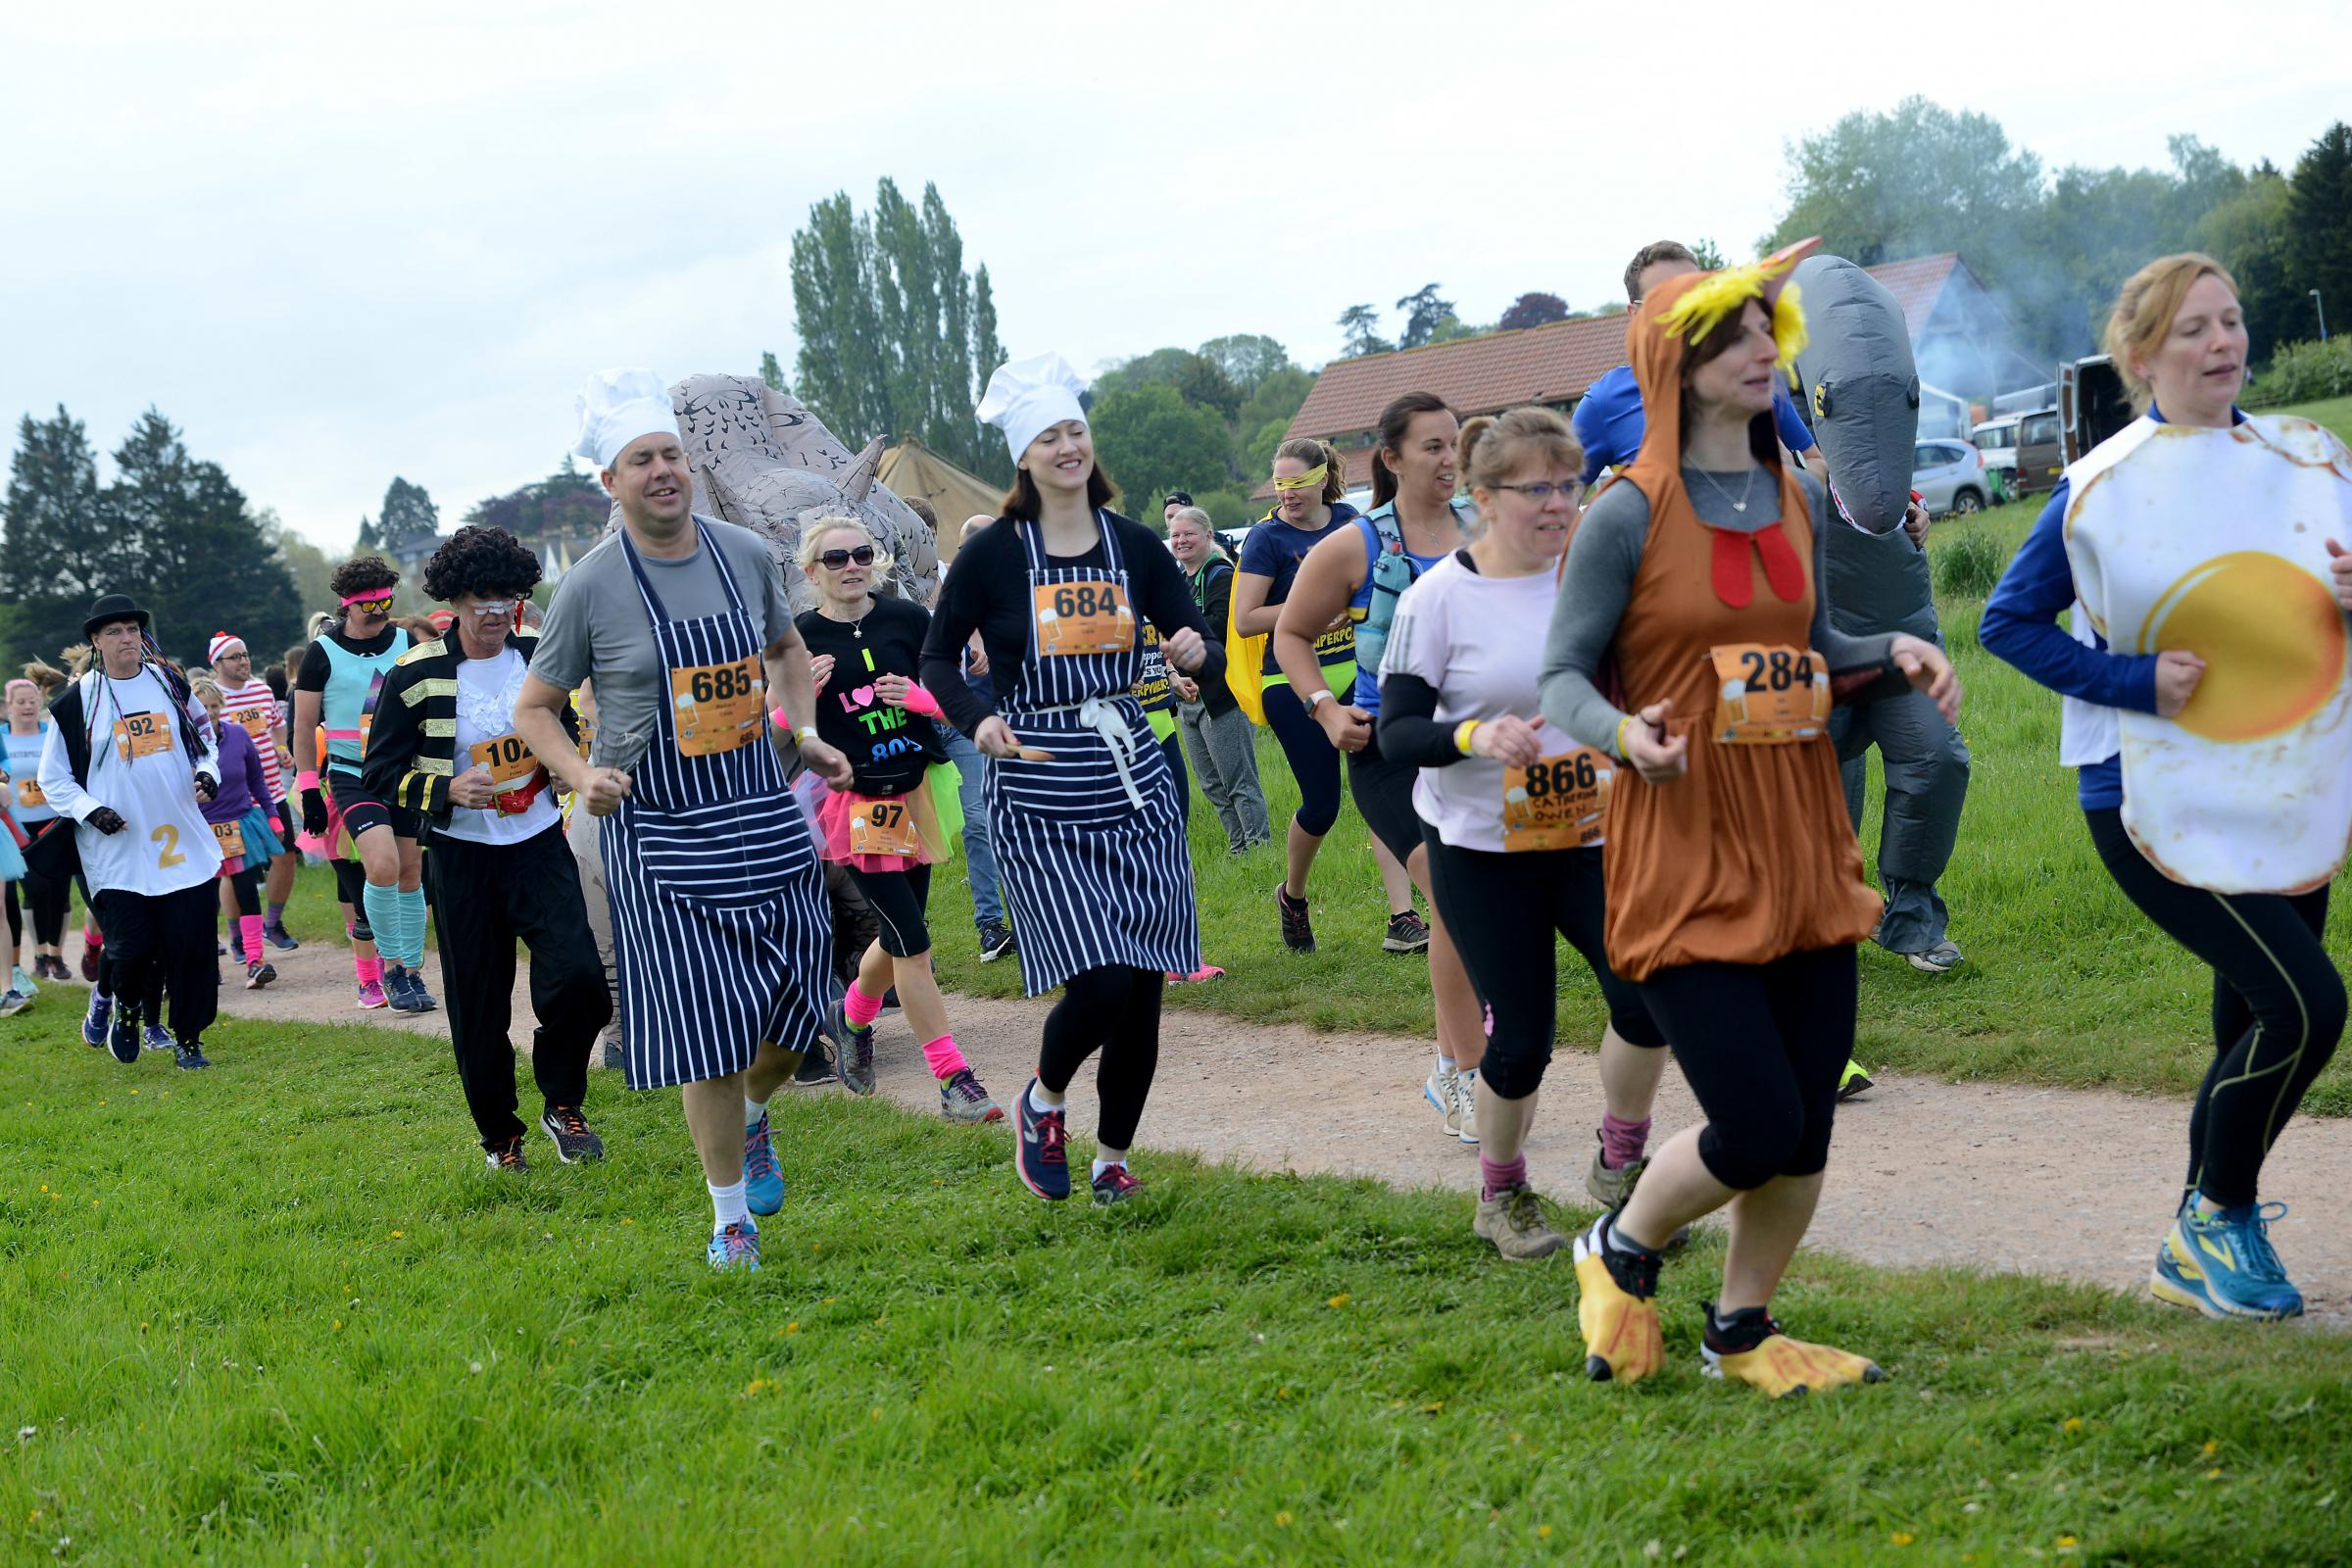 RUN: Hundreds took part in the Taunton Ciderthon over the bank holiday weekend